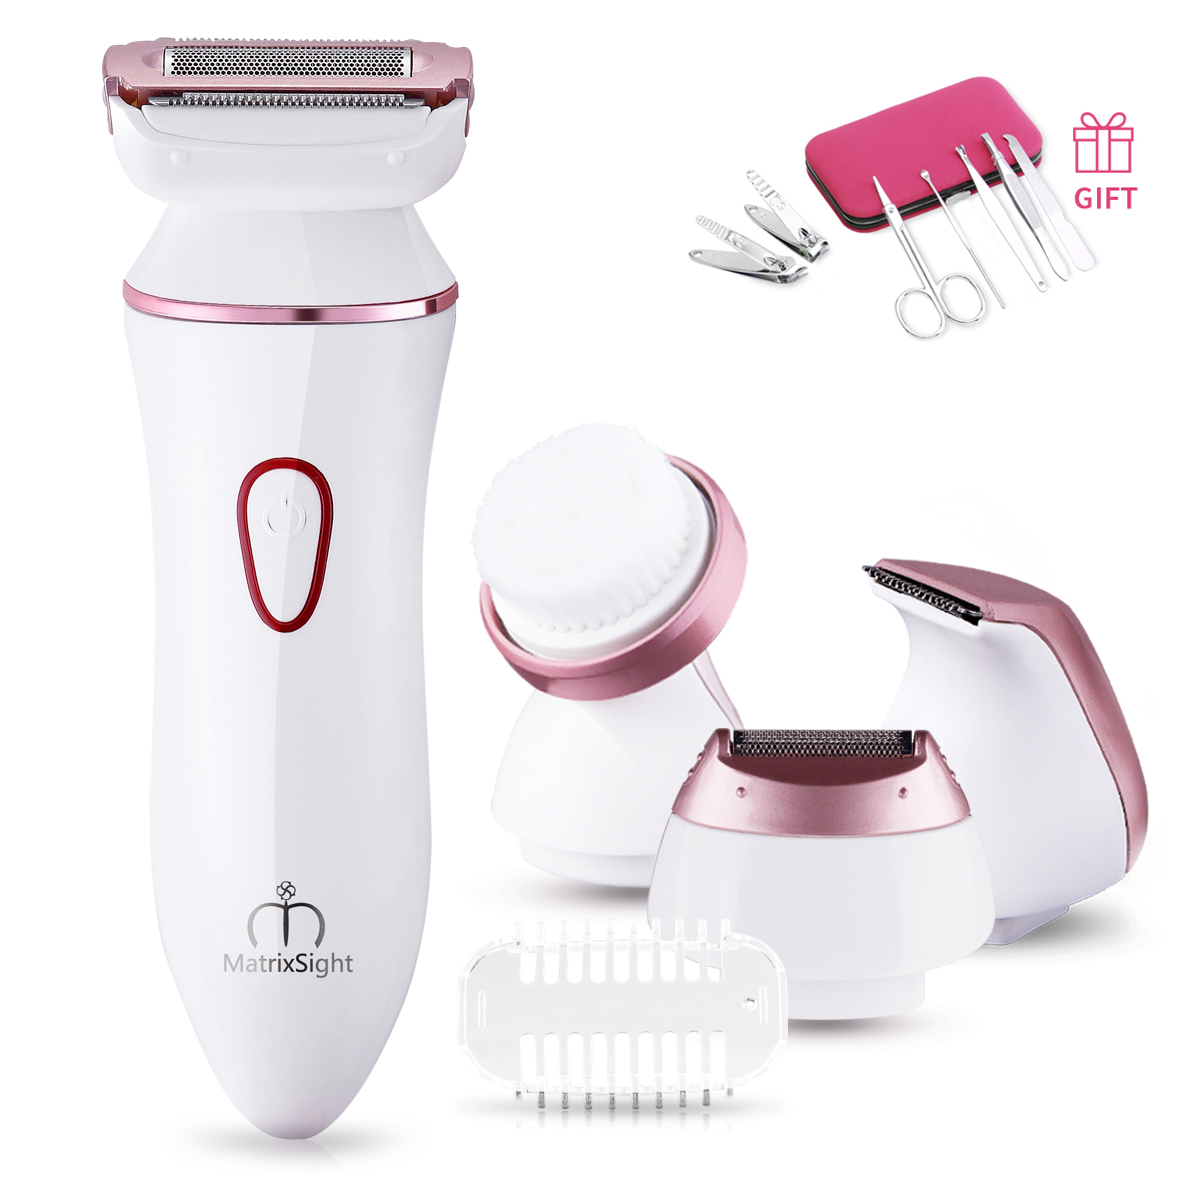 Bikini Trimmer Hair Epilator for Women , 4 in 1 Women's Electric Razor Rechargeable Bikini Trimmer Callus Remover with 2 Adjustable Speed Wet Dry Use Shaver for Face Arm Armpit Legs Bikini Line